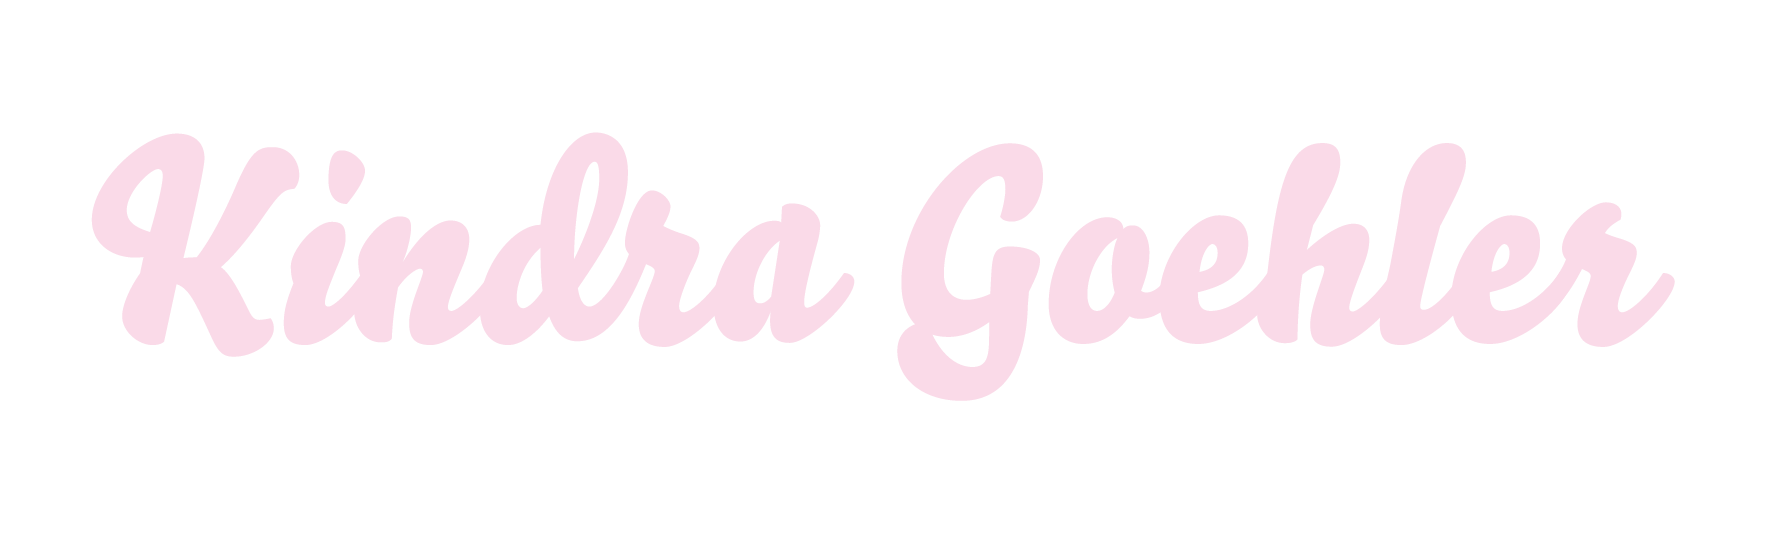 Logo for Kindra Goehler.